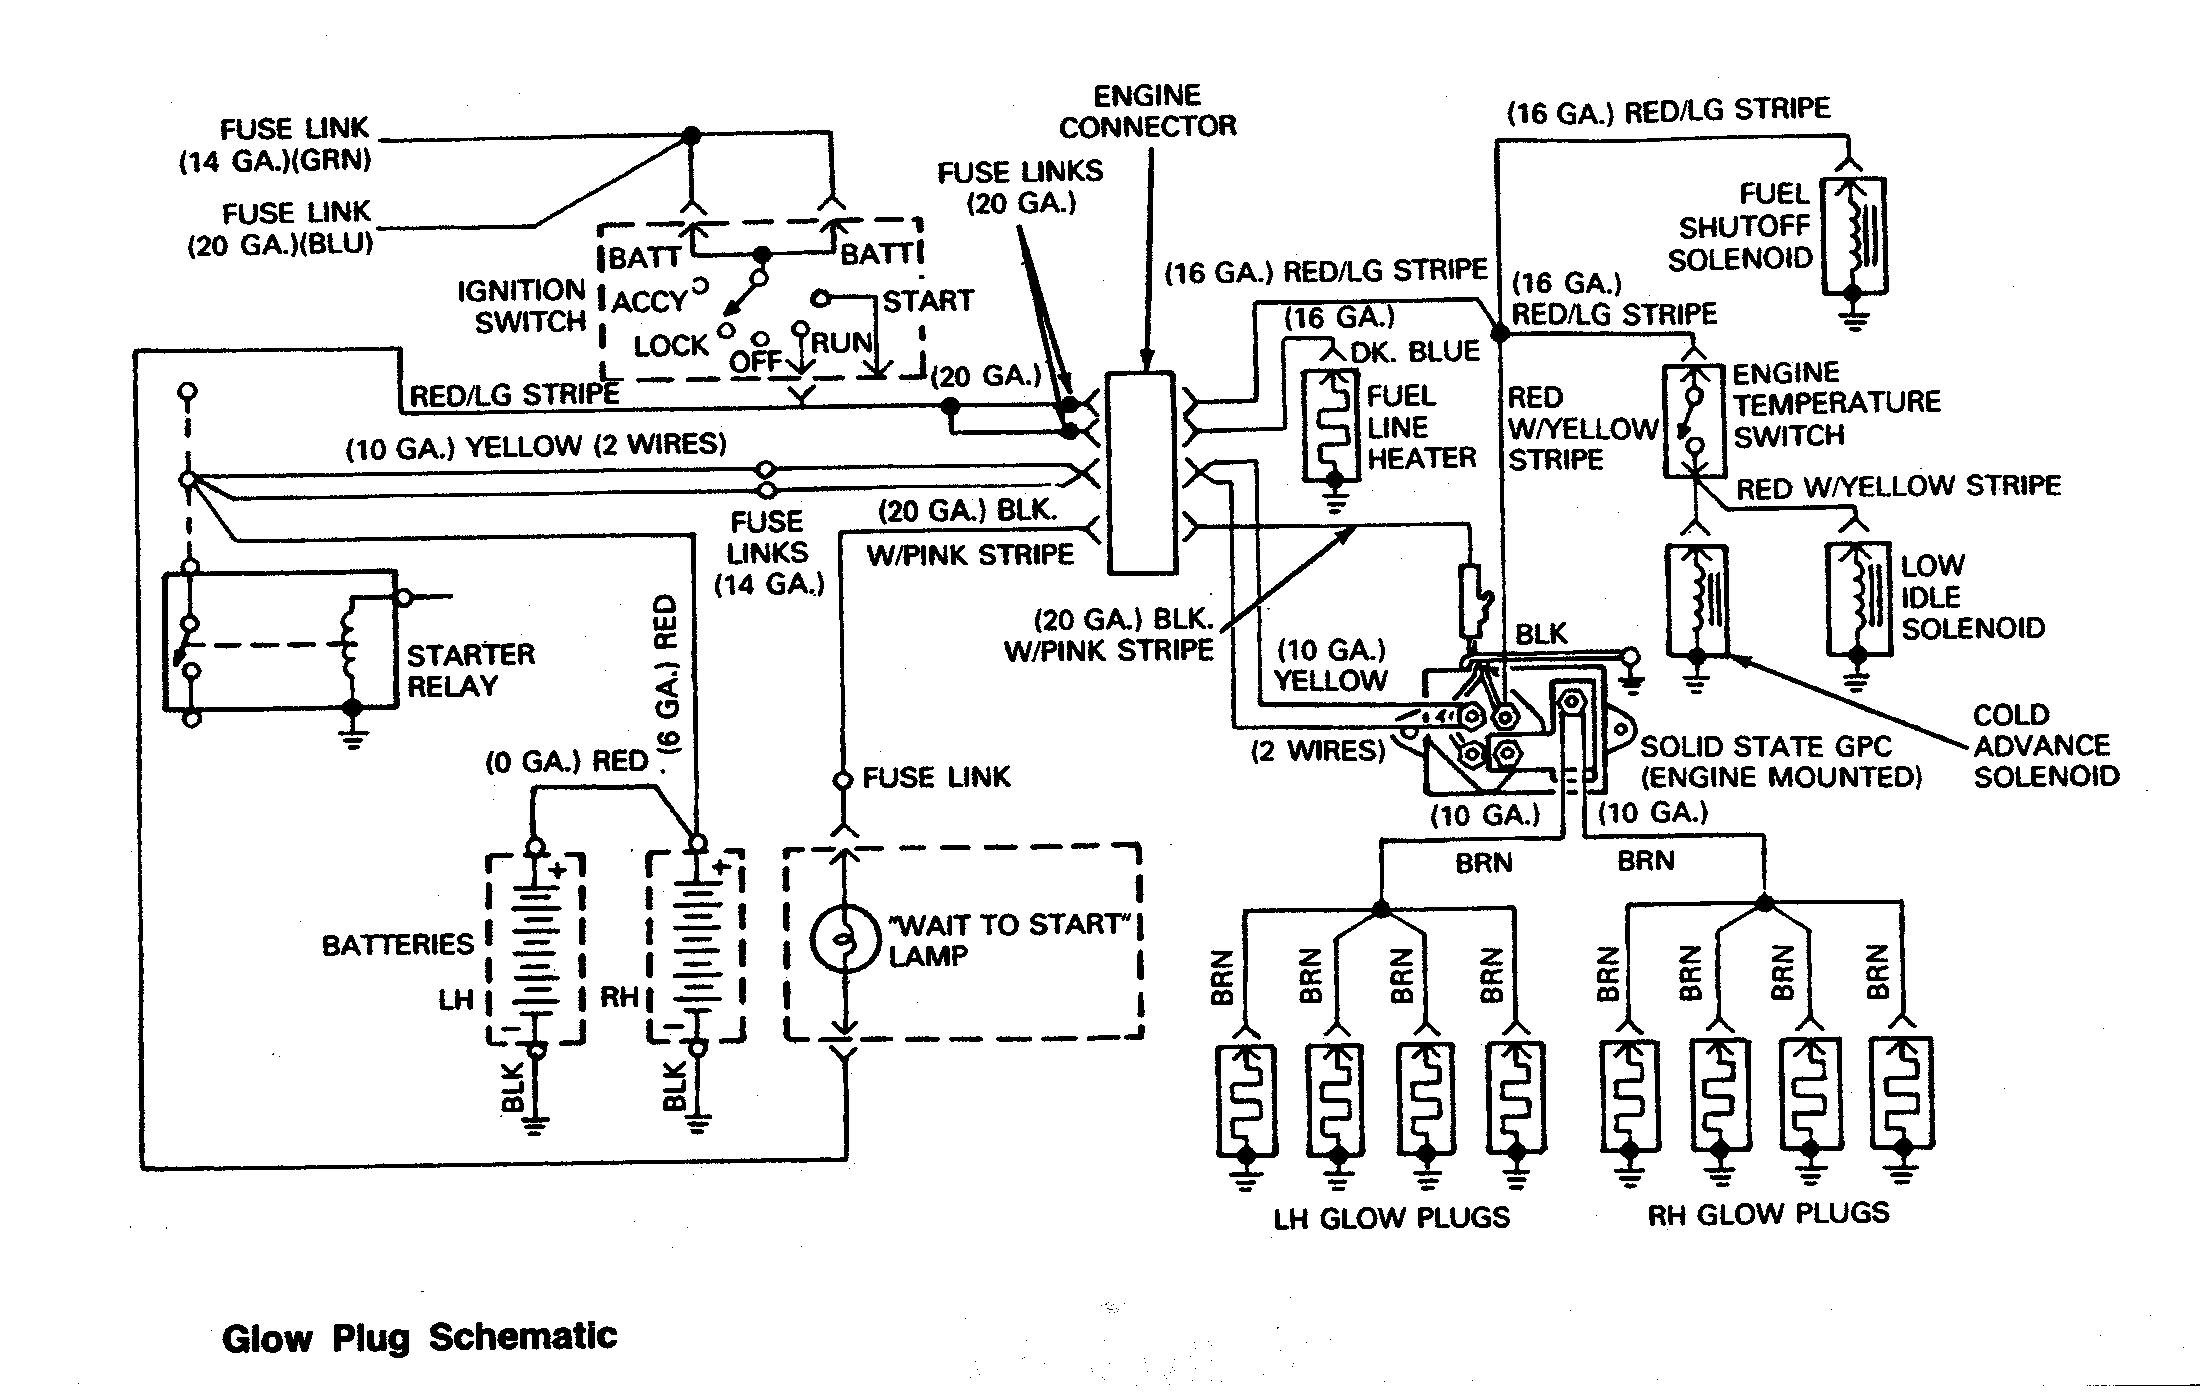 7 3 Powerstroke Parts Diagram Glow Engine Diagram Experts Wiring Diagram • Of 7 3 Powerstroke Parts Diagram Glow Engine Diagram Experts Wiring Diagram •